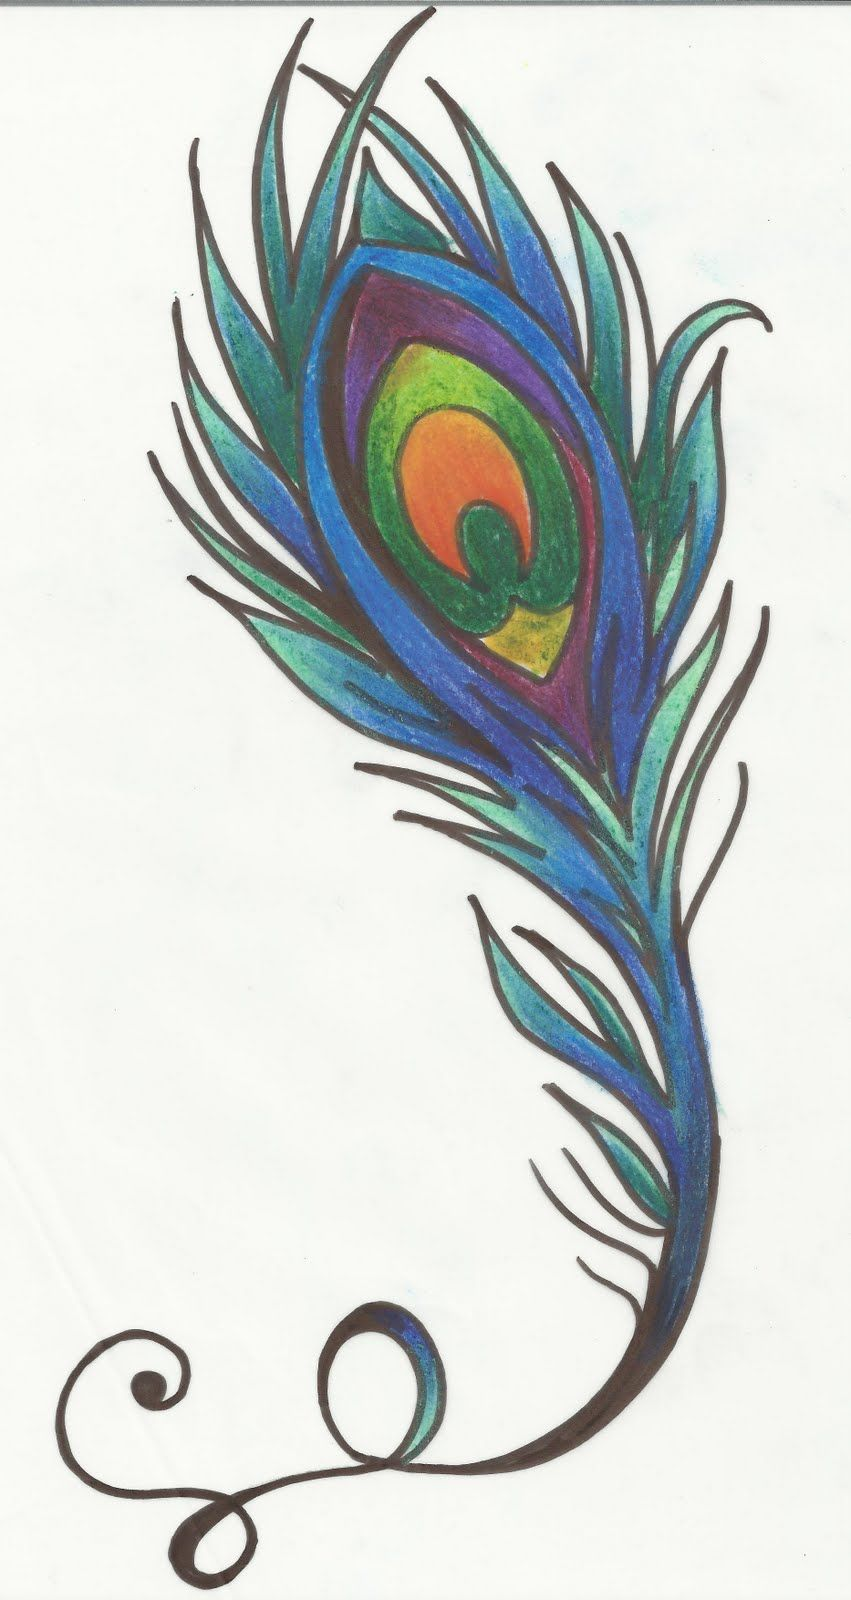 Peacock Feather Drawings Tattoo Peacock feathe | Tattoo ...